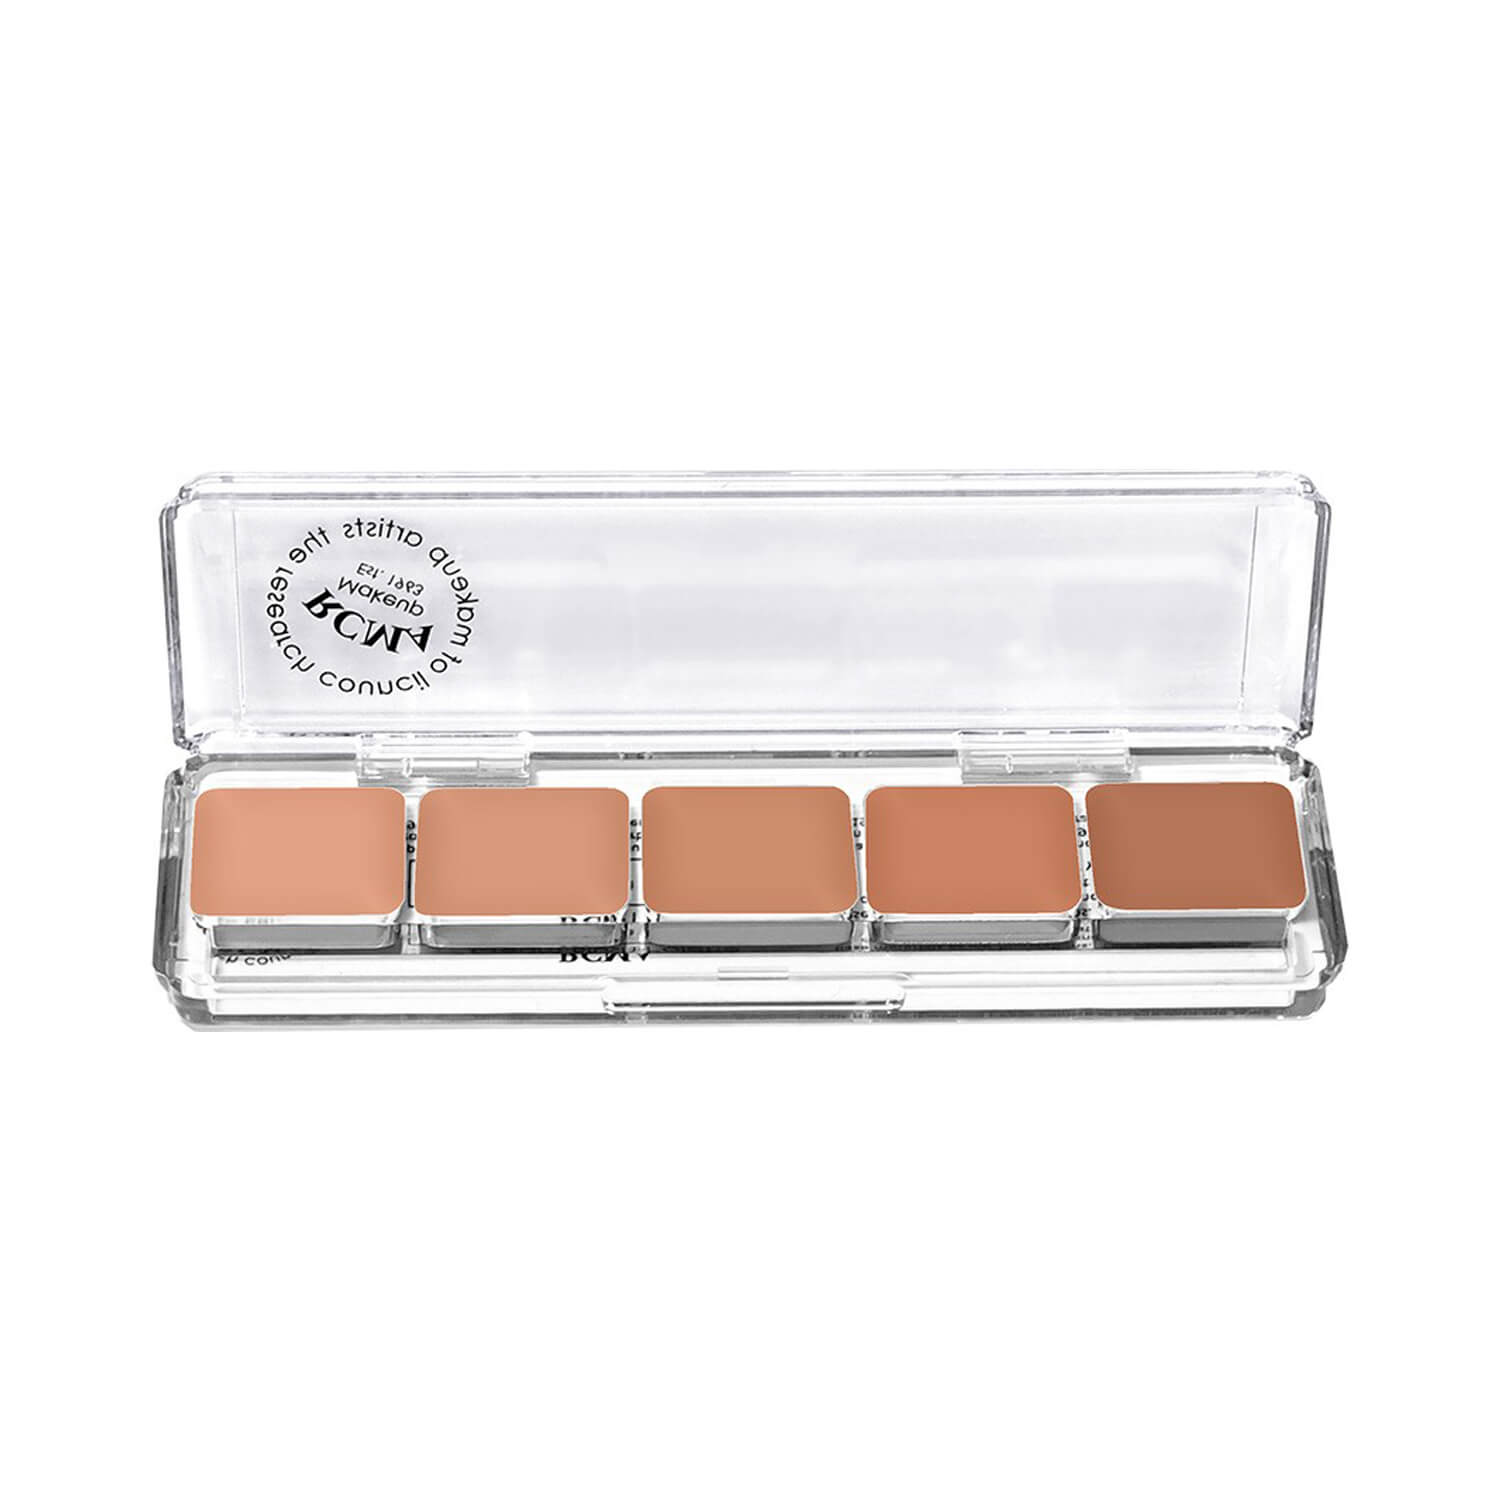 RCMA Olive Series 5 Part Palette